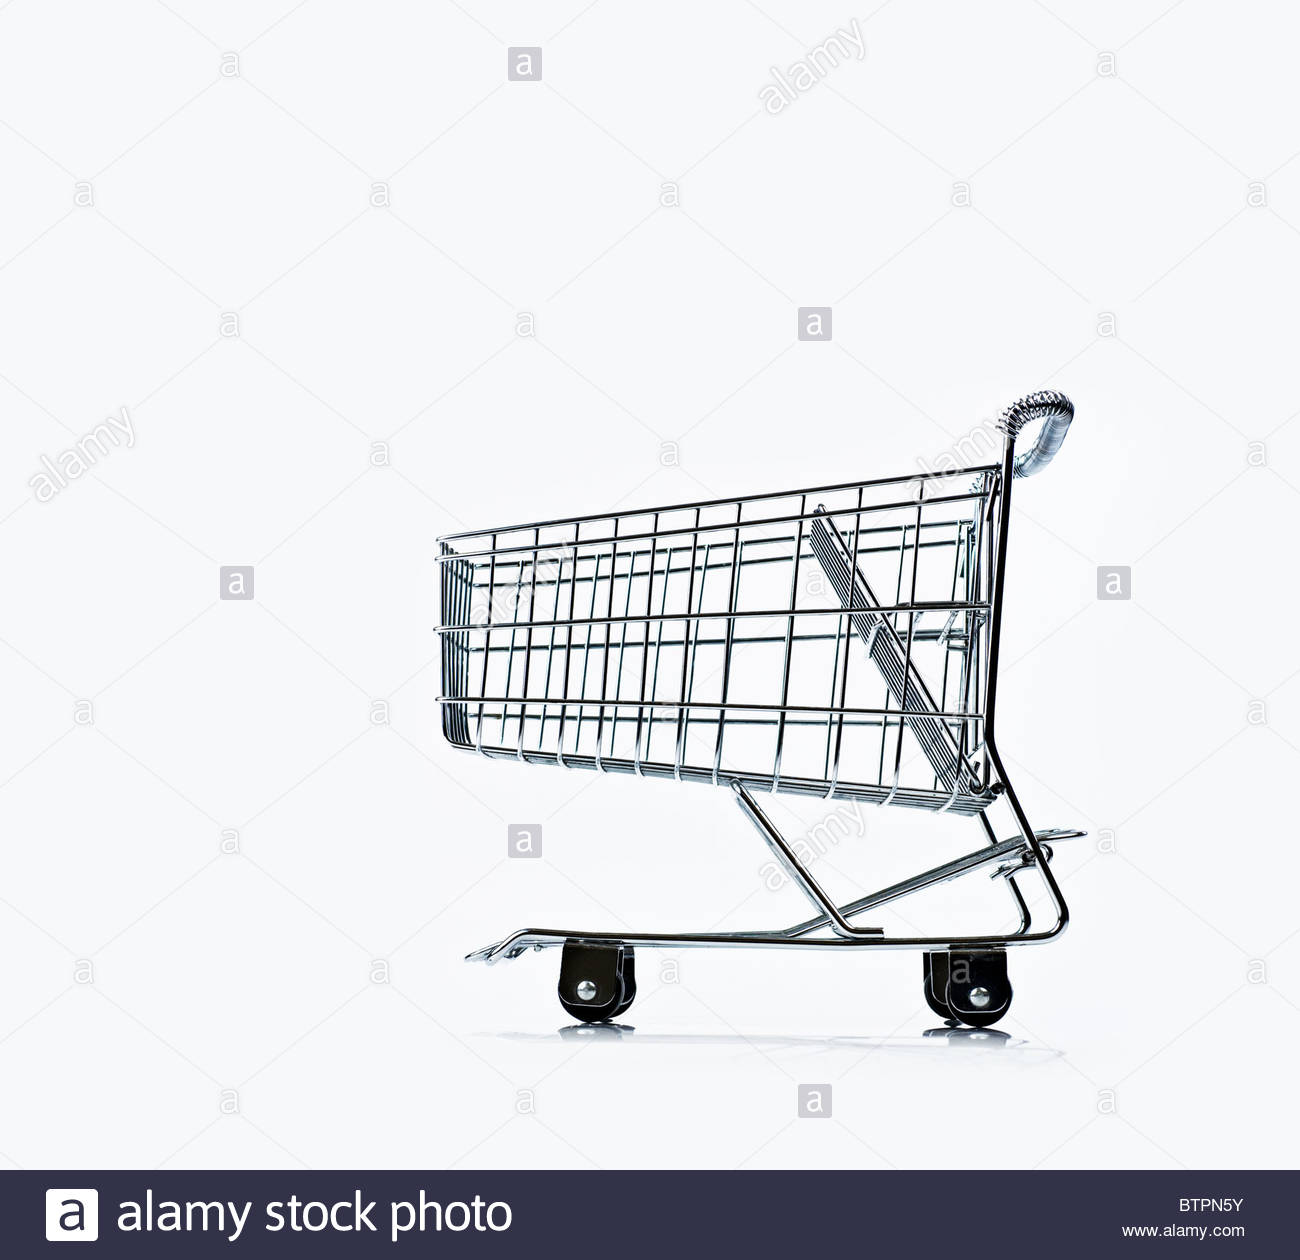 Shopping trolley - Stock Image